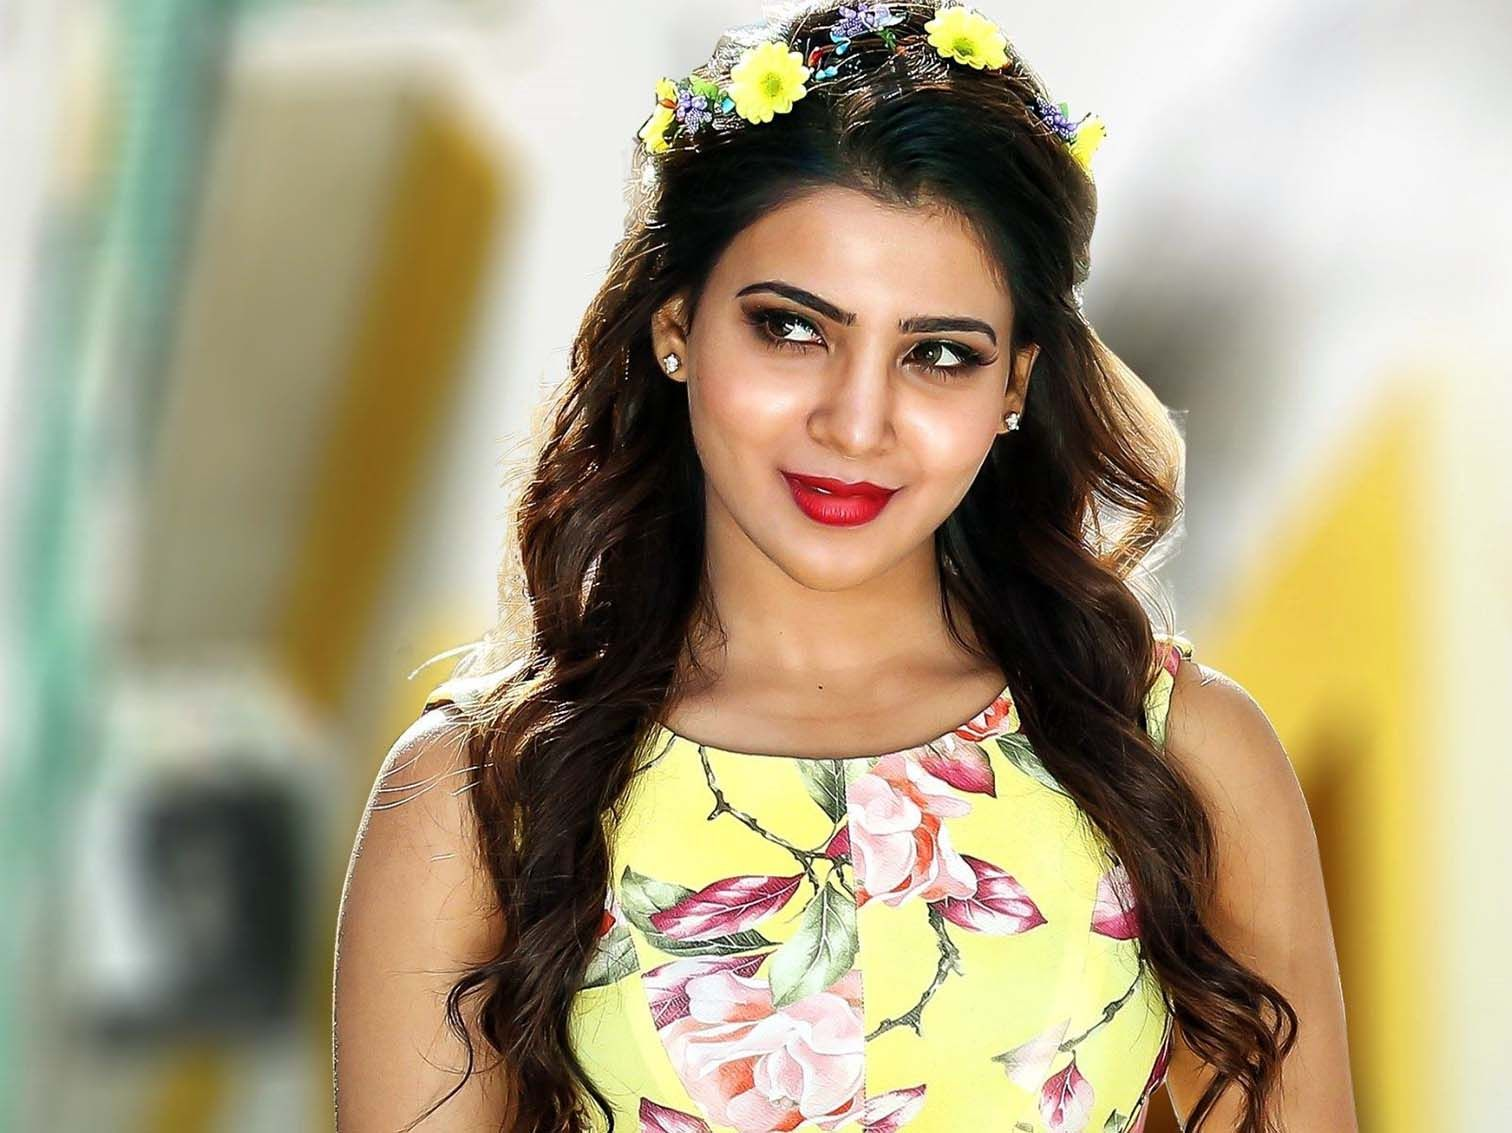 Samantha Ruth Prabhu Beautiful Wallpapers Hd 1080p Sam Pinterest